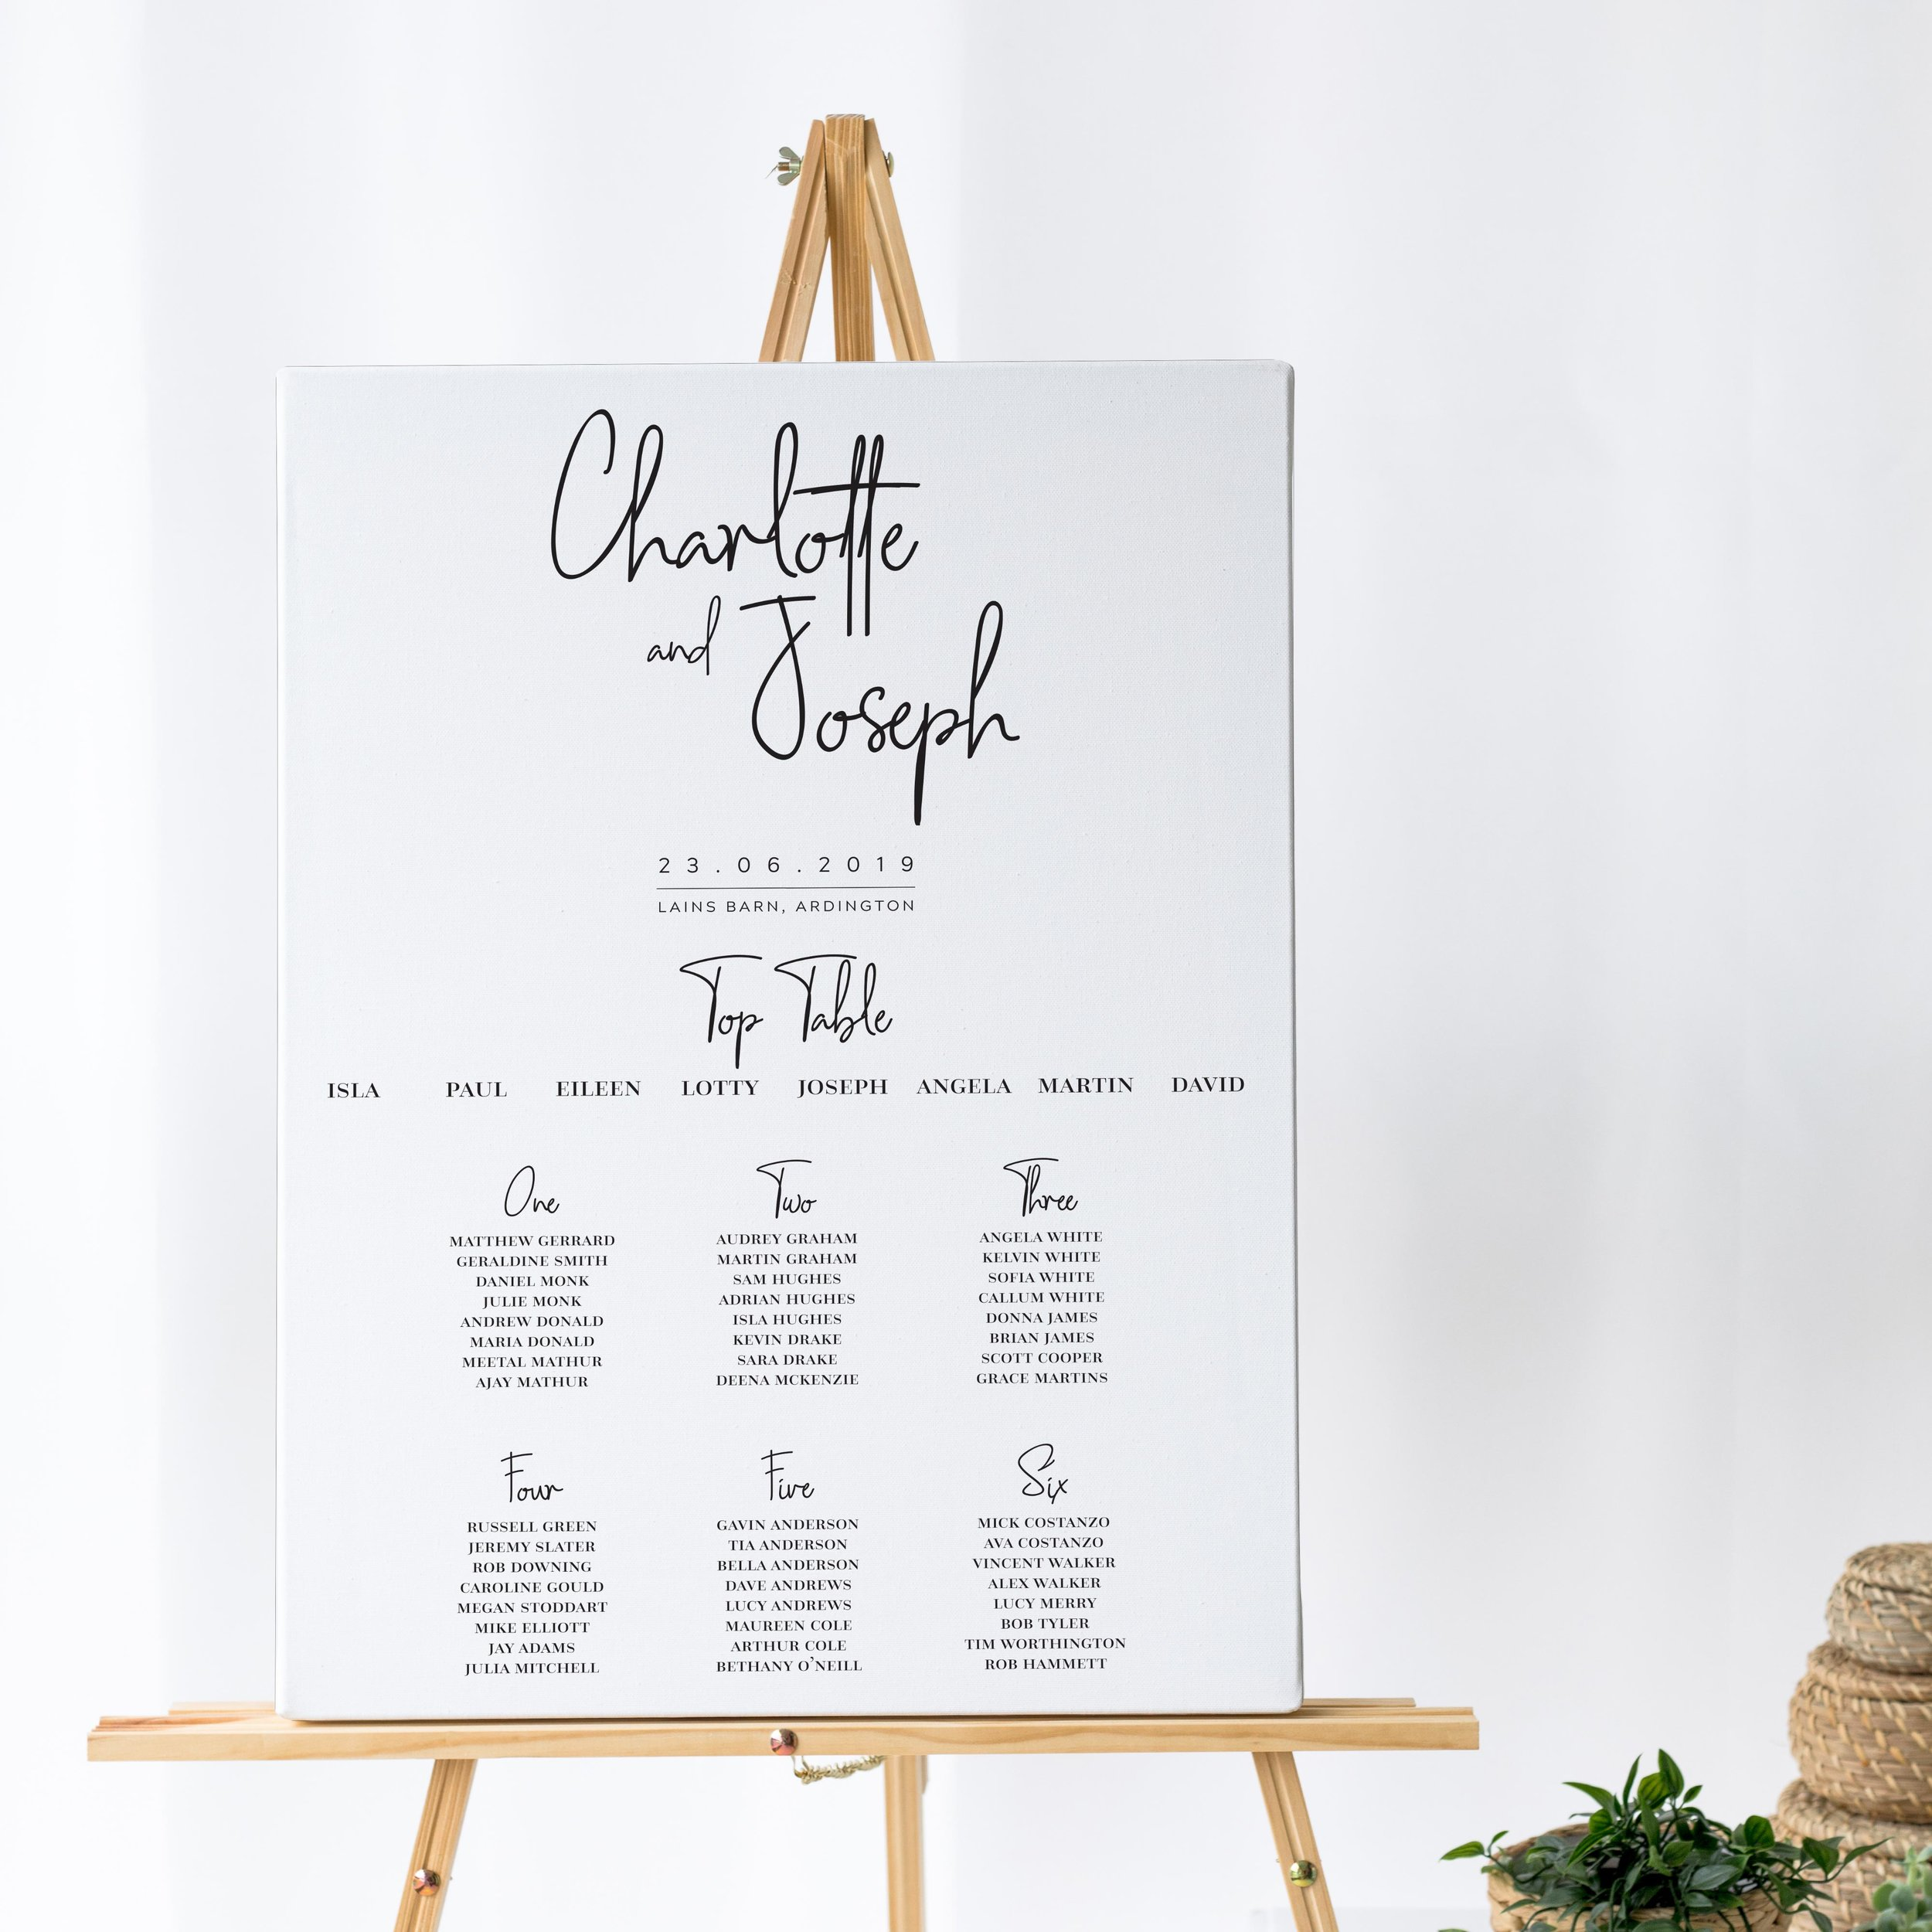 Signage Bundles - Whilst you can order a welcome sign by itself, you can order matching items to get a discount on your signage.Couples typically pair their welcome sign with a matching table plan to greet guests as they arrive but you can also add an order of the day timeline for a further discount.To qualify, all items must be the same size, finish and orientation.